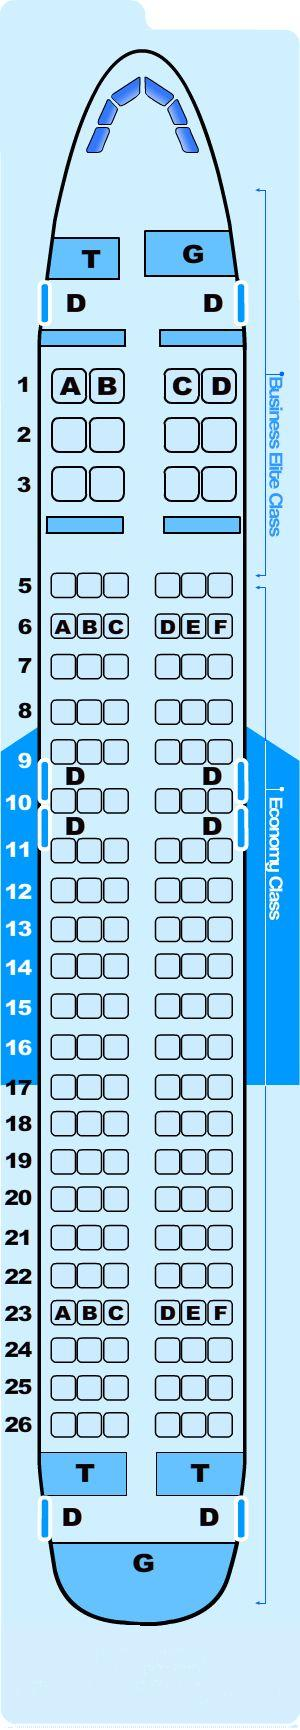 Seat map for Northwest Airlines Airbus A320 200 International